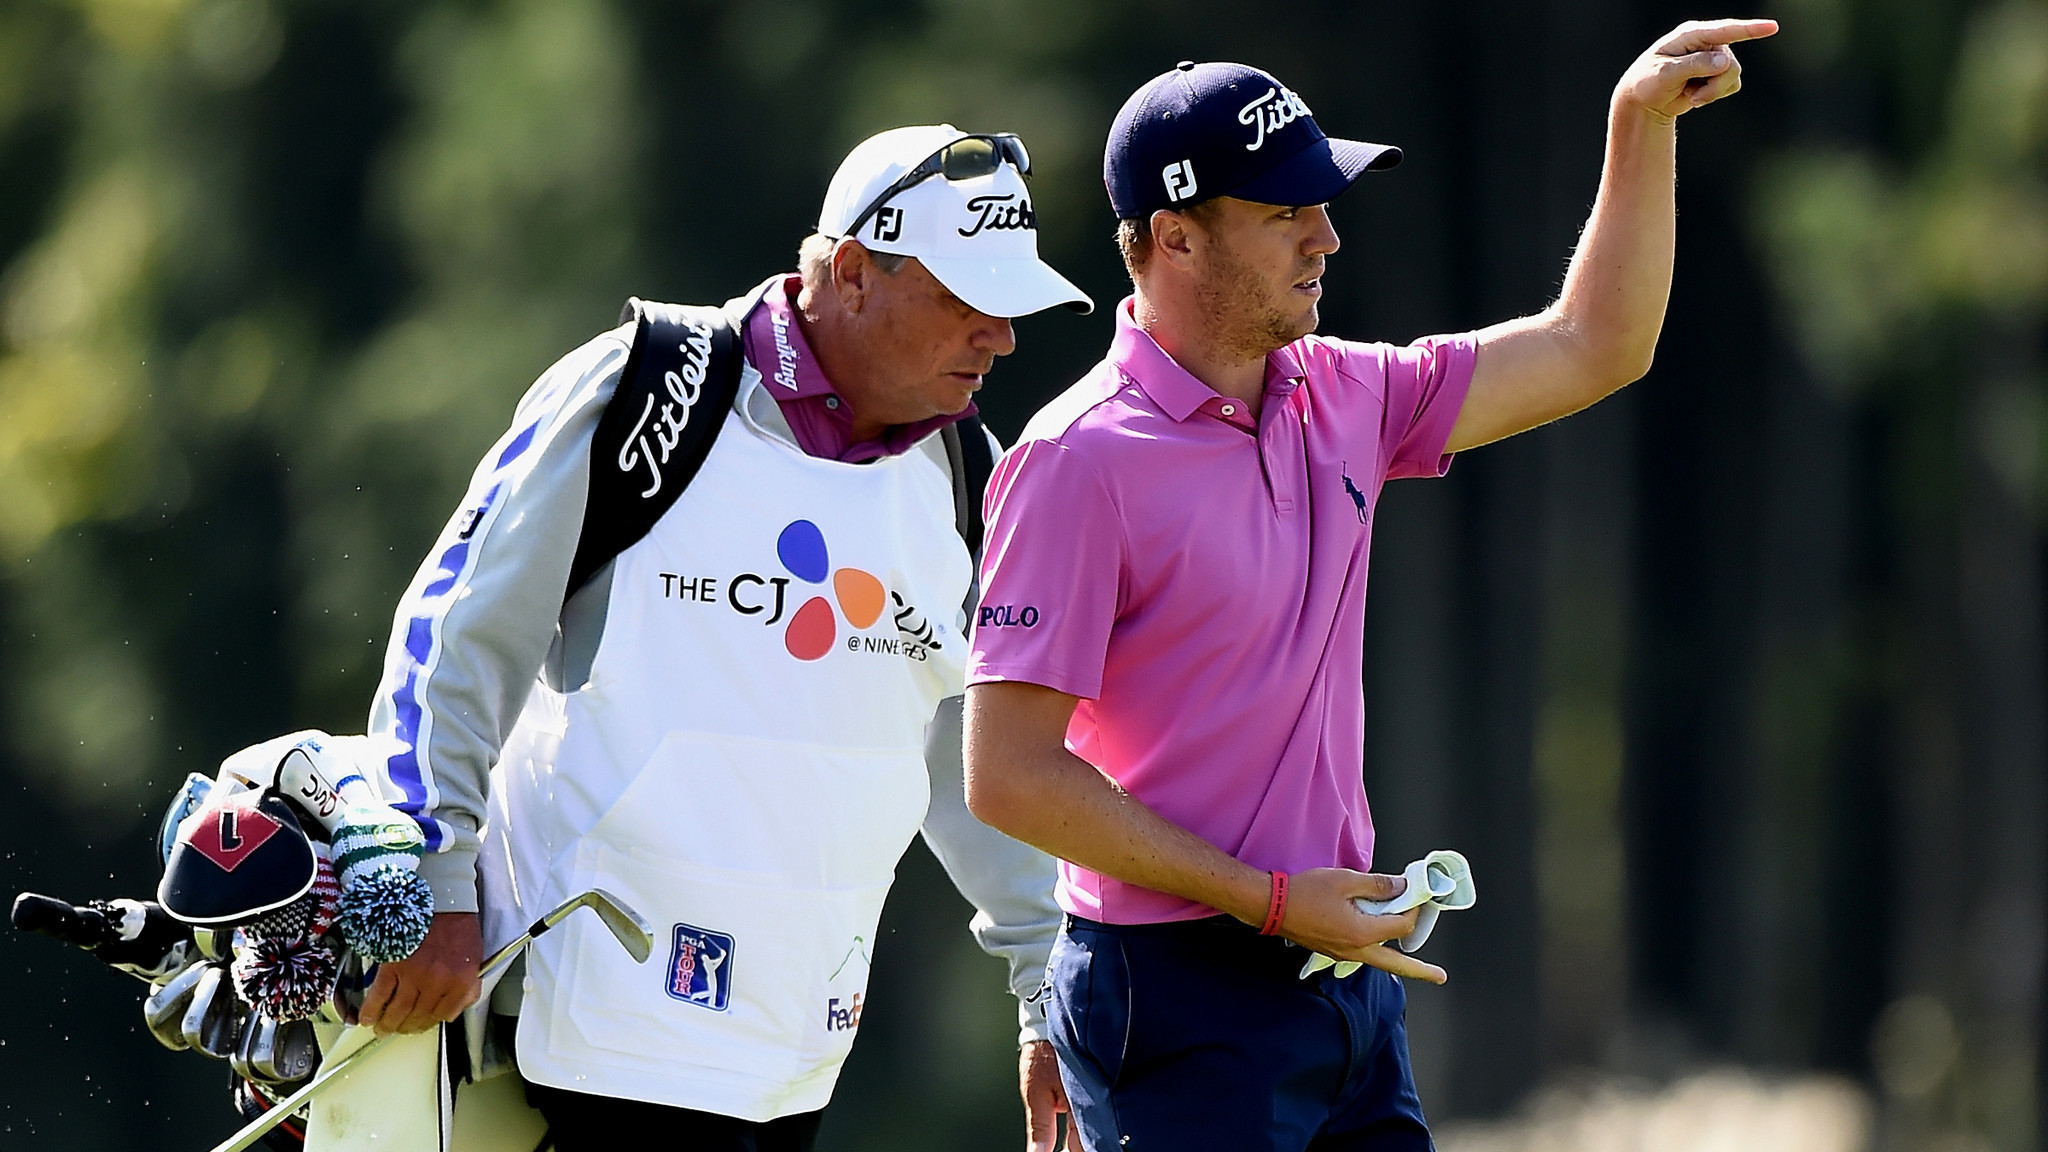 Golf roundup: Justin Thomas wins CJ Cup in a playoff over Marc Leishman